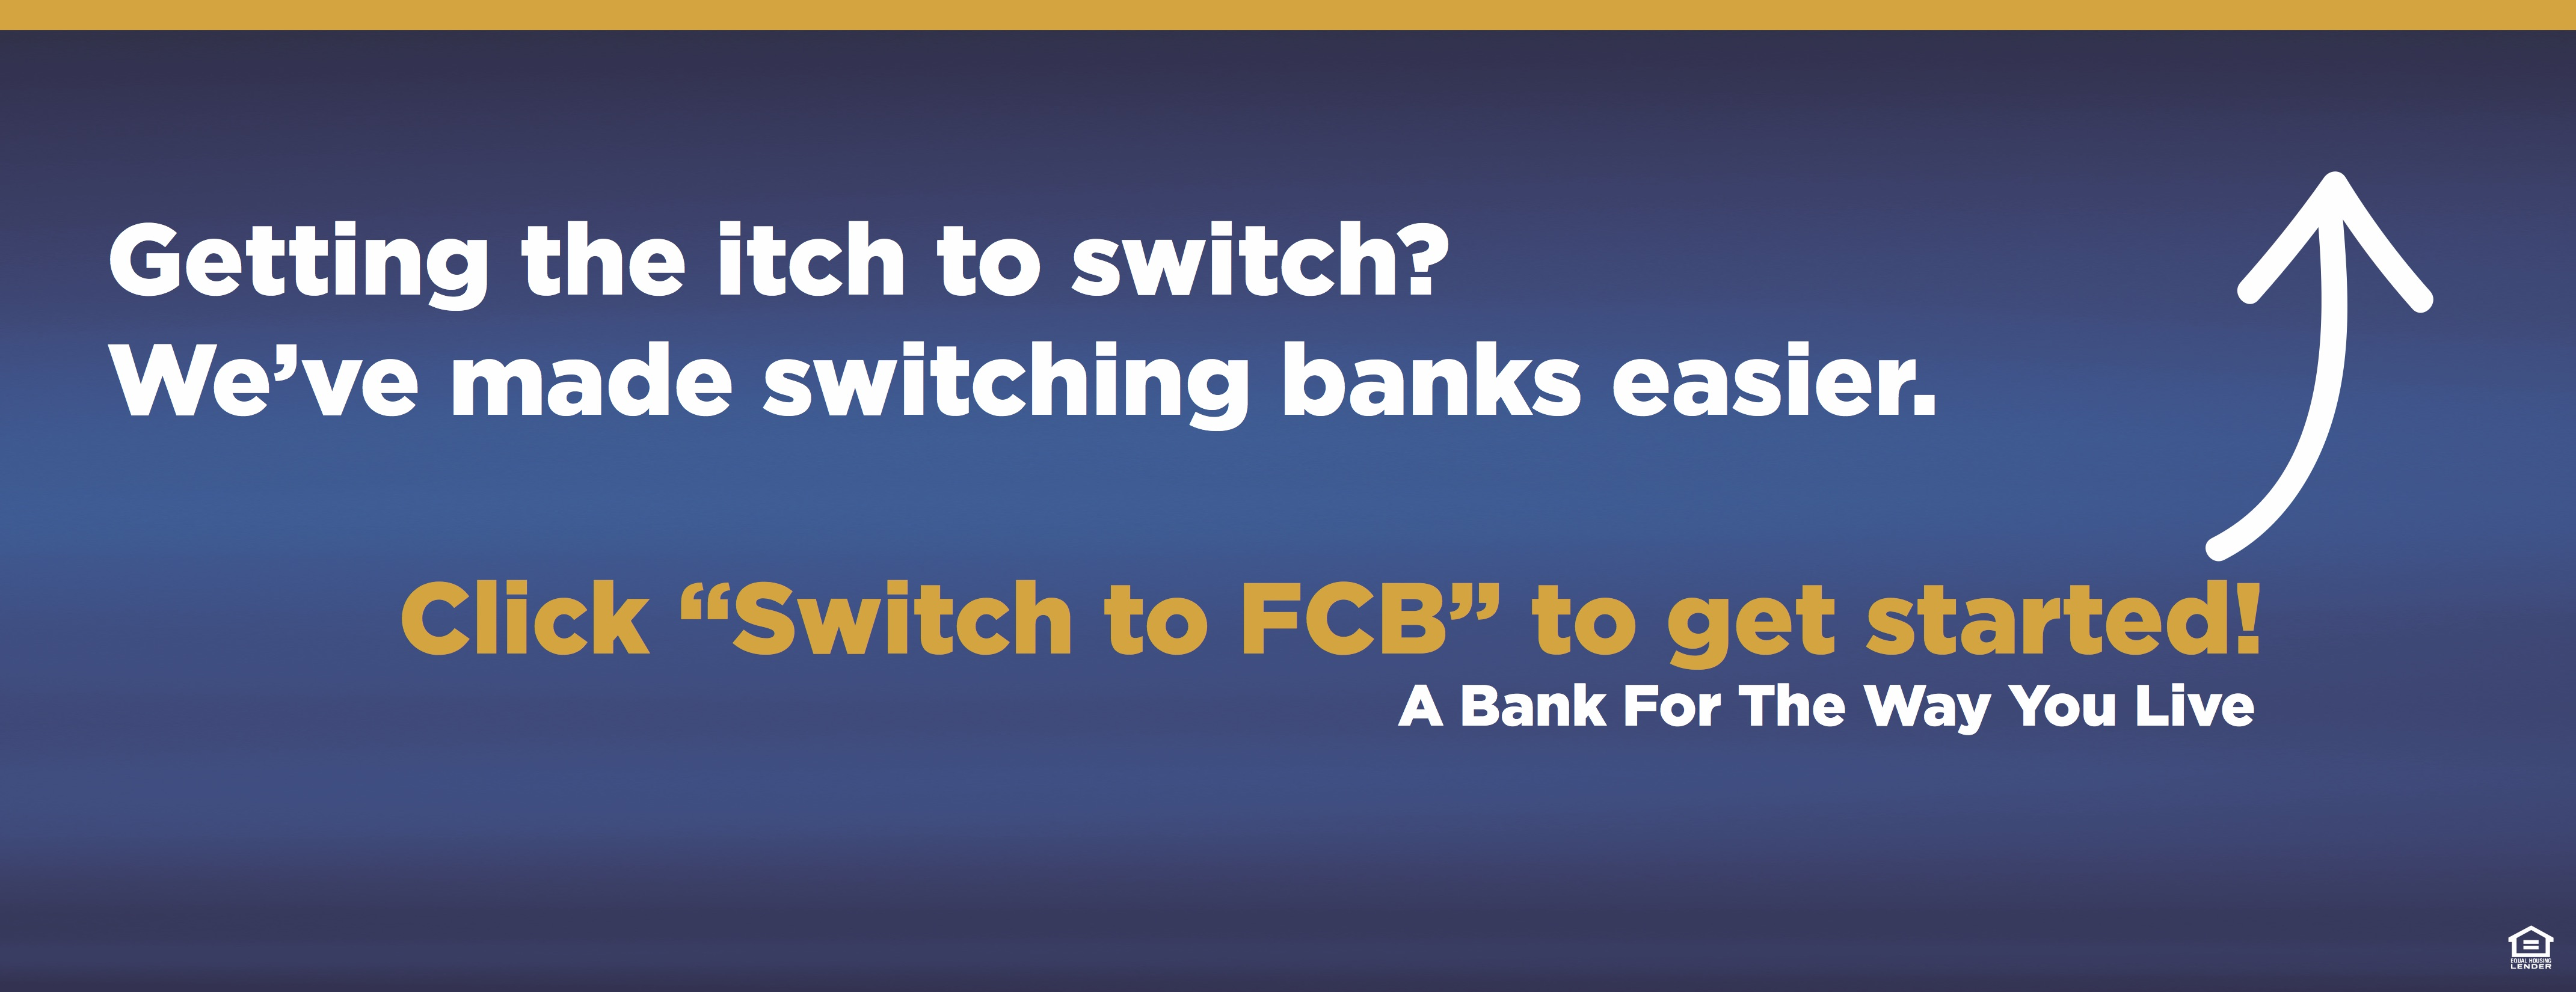 Switch-to-FCB-Banner